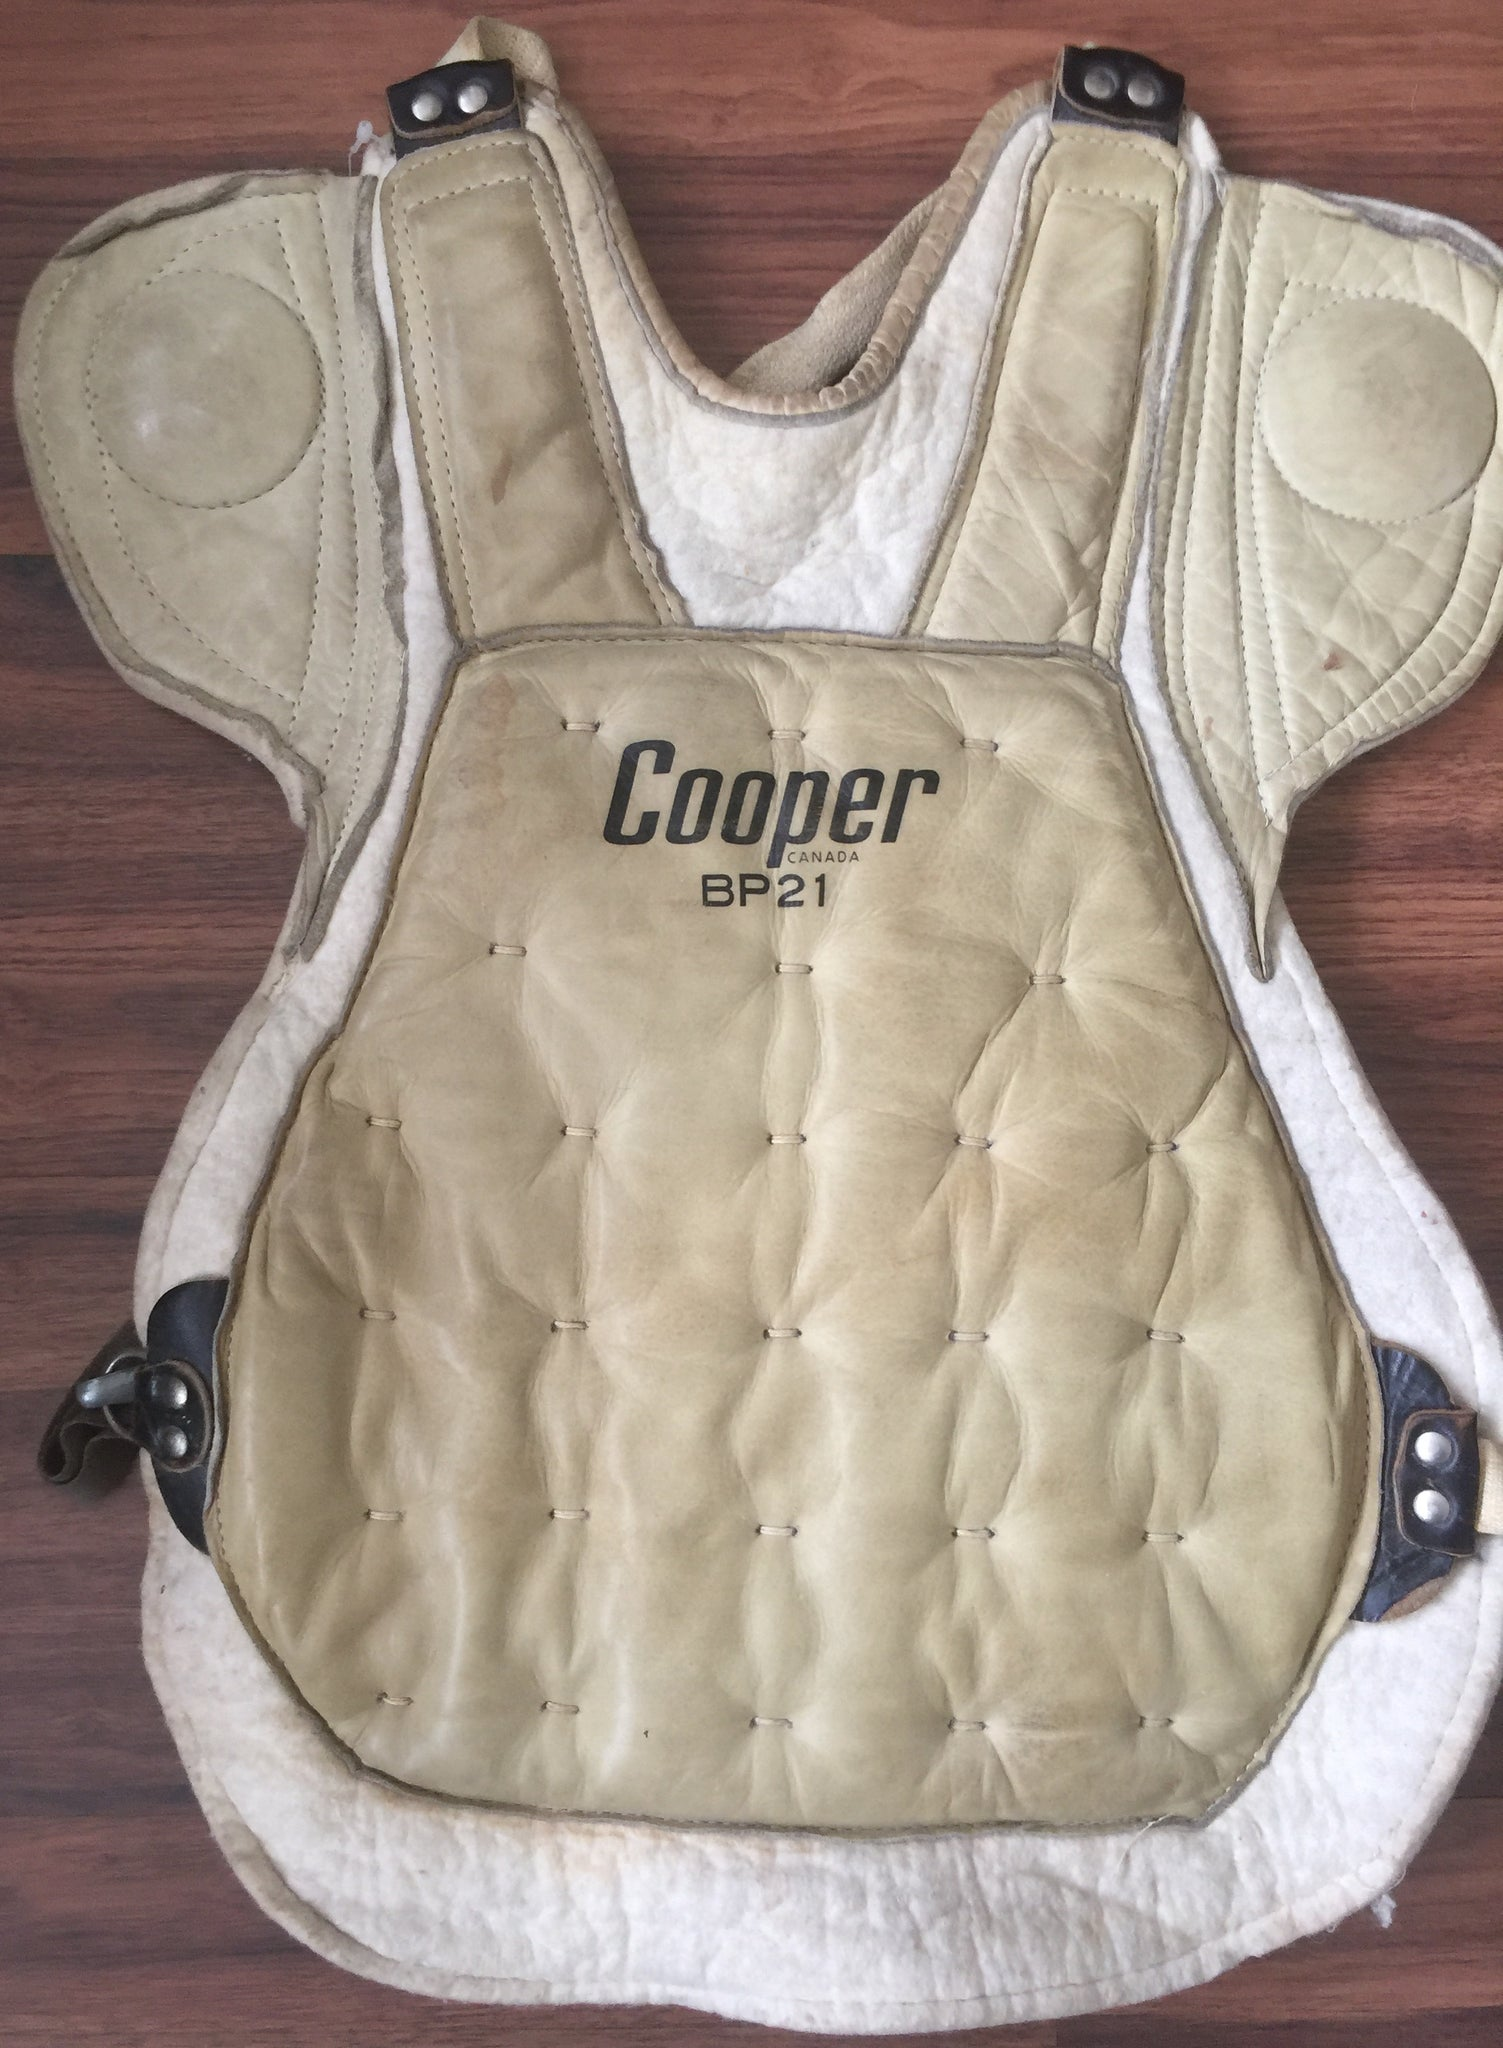 Vintage Cooper BP 21 Chest Protector